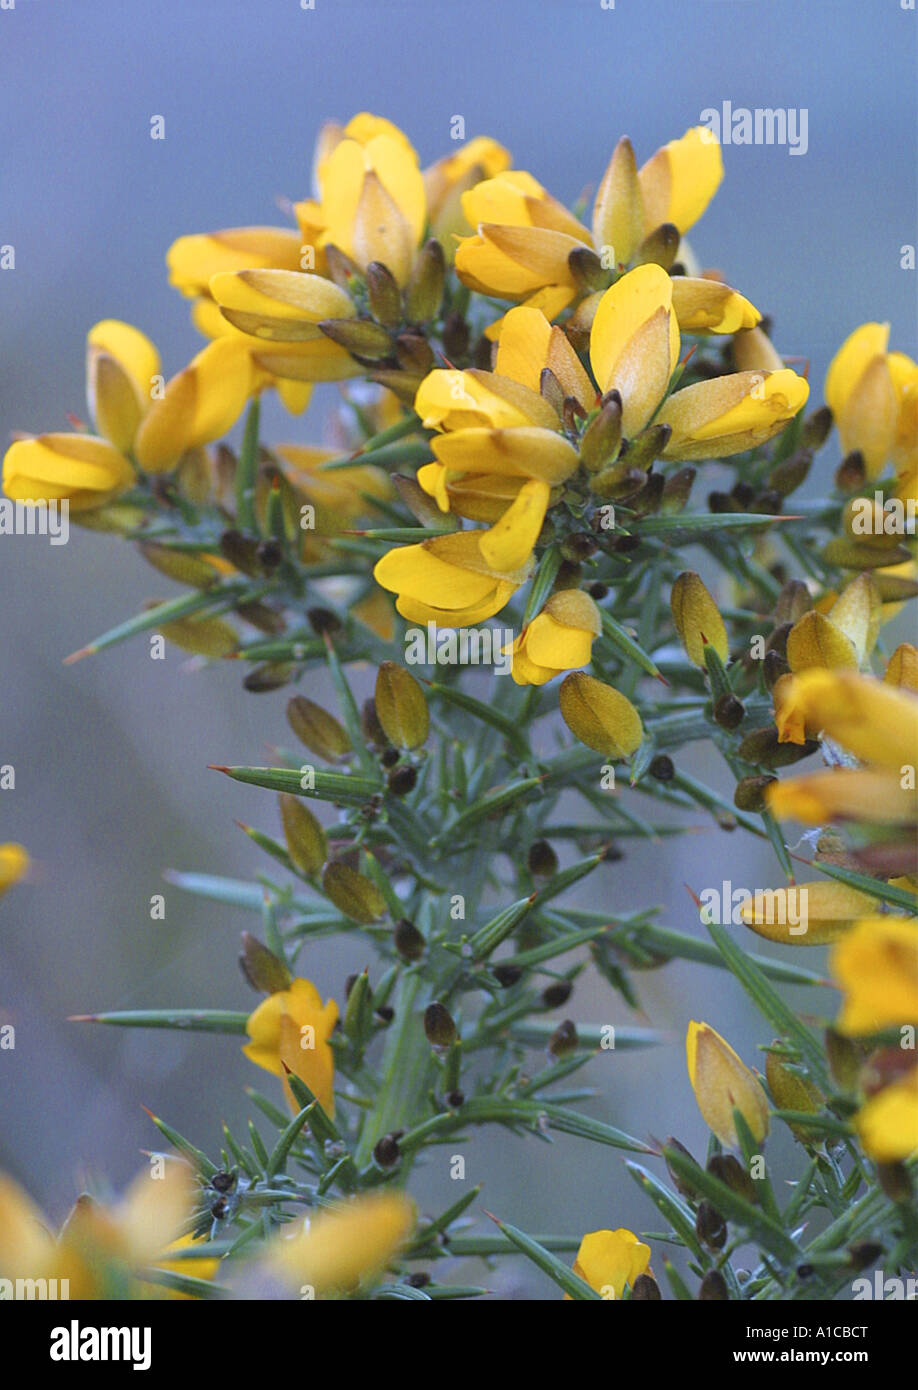 gorse, furze, golden gorse (Ulex europaeus), detail of the blossoms, Spain, Canary Islands, Tenerife - Stock Image